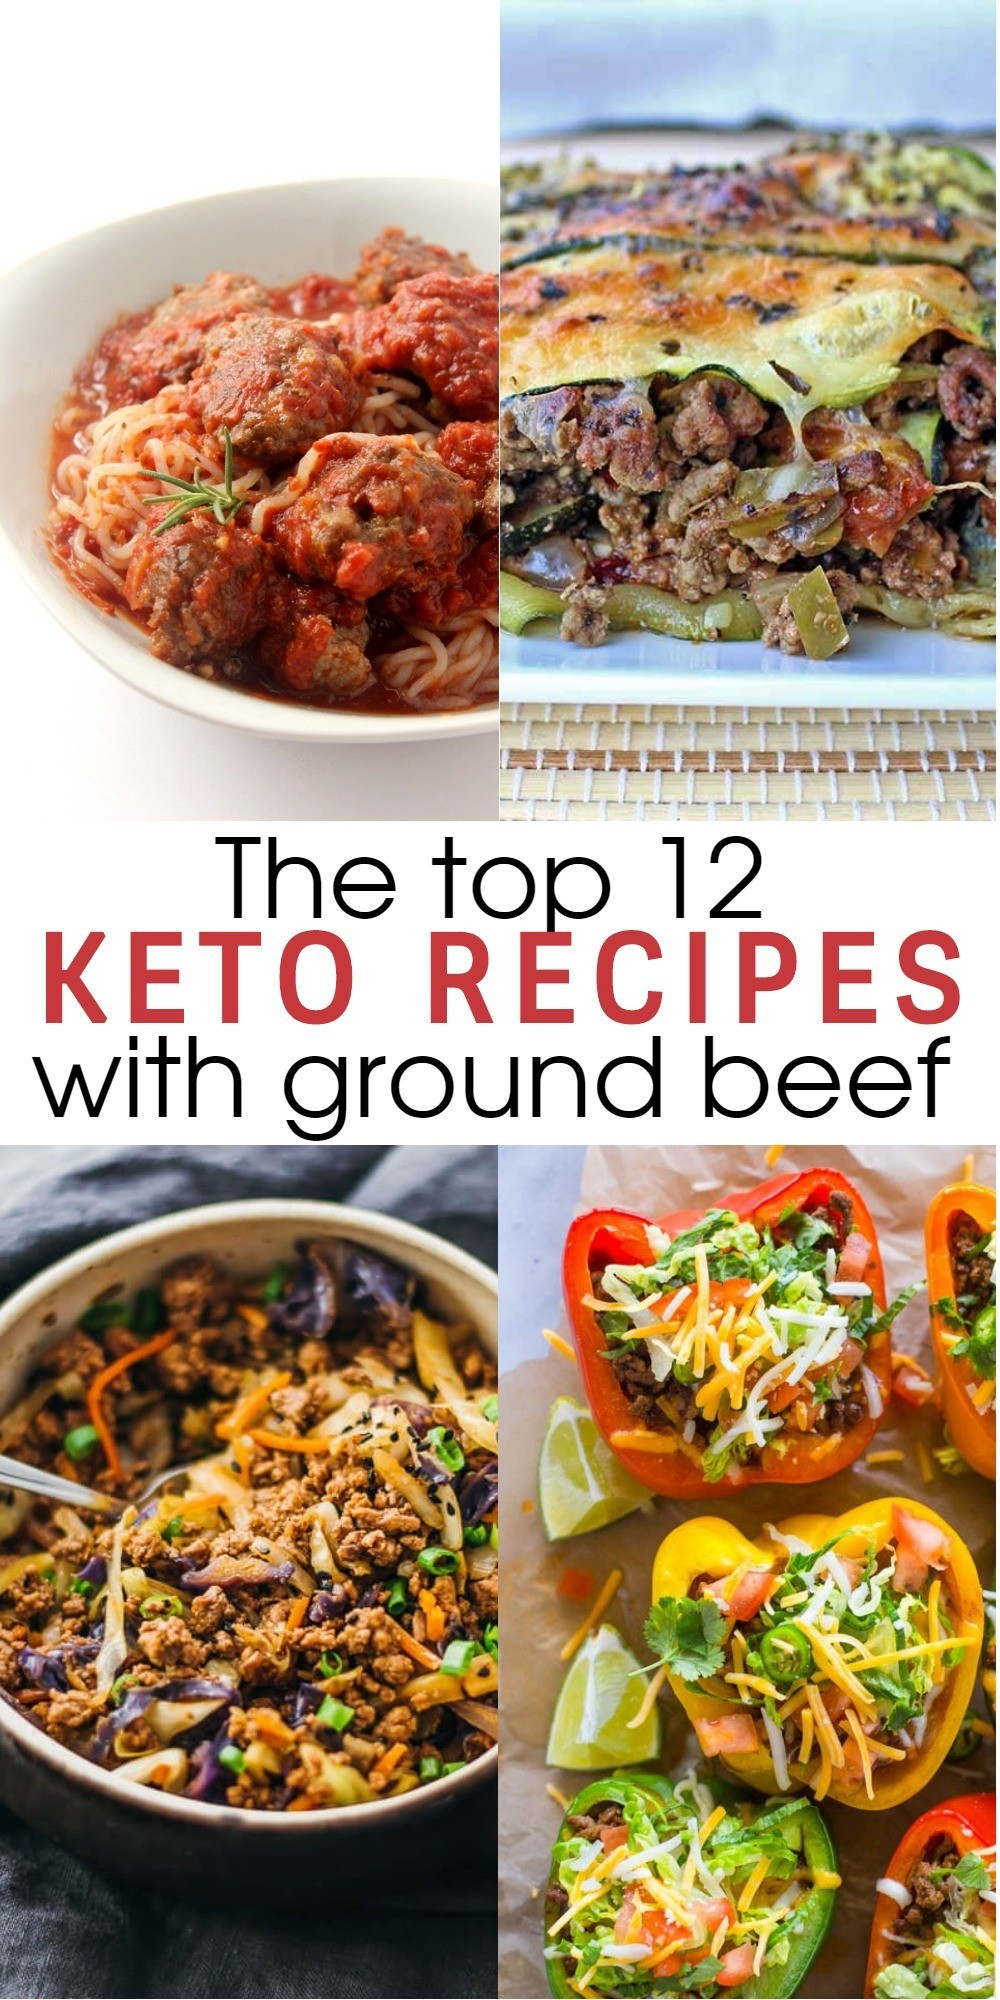 Hamburger Keto Recipes Low Carb  12 Flavorful and Easy Keto Recipes With Ground Beef To Try